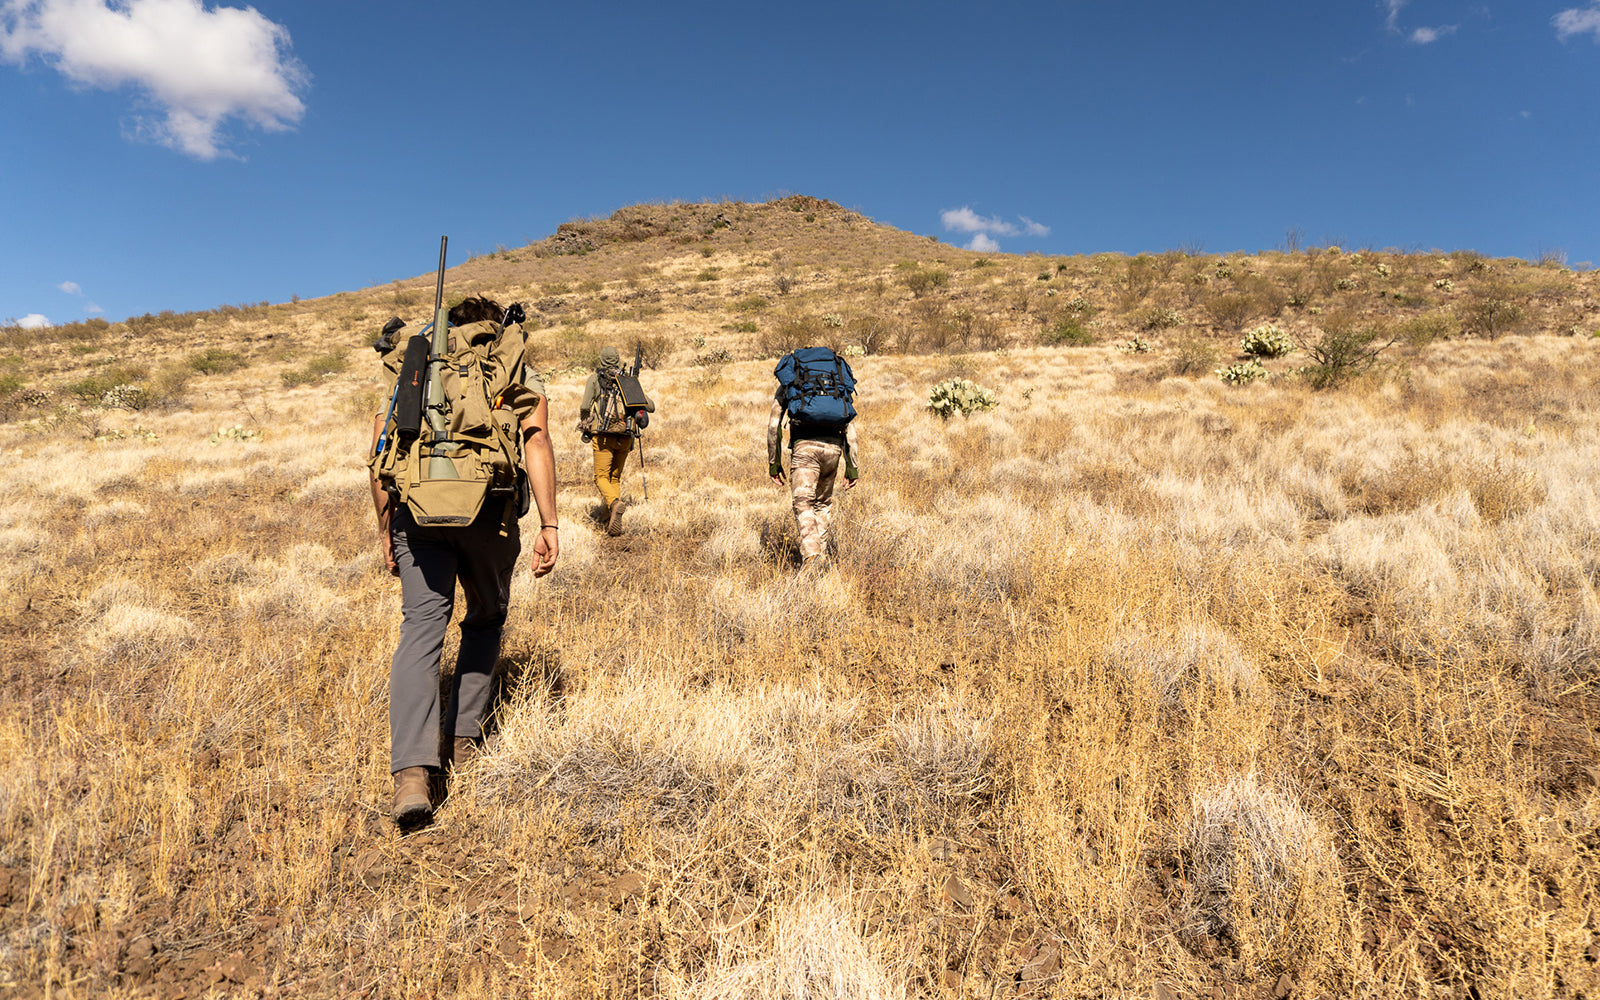 Training for the backcountry with heavy hunting packs